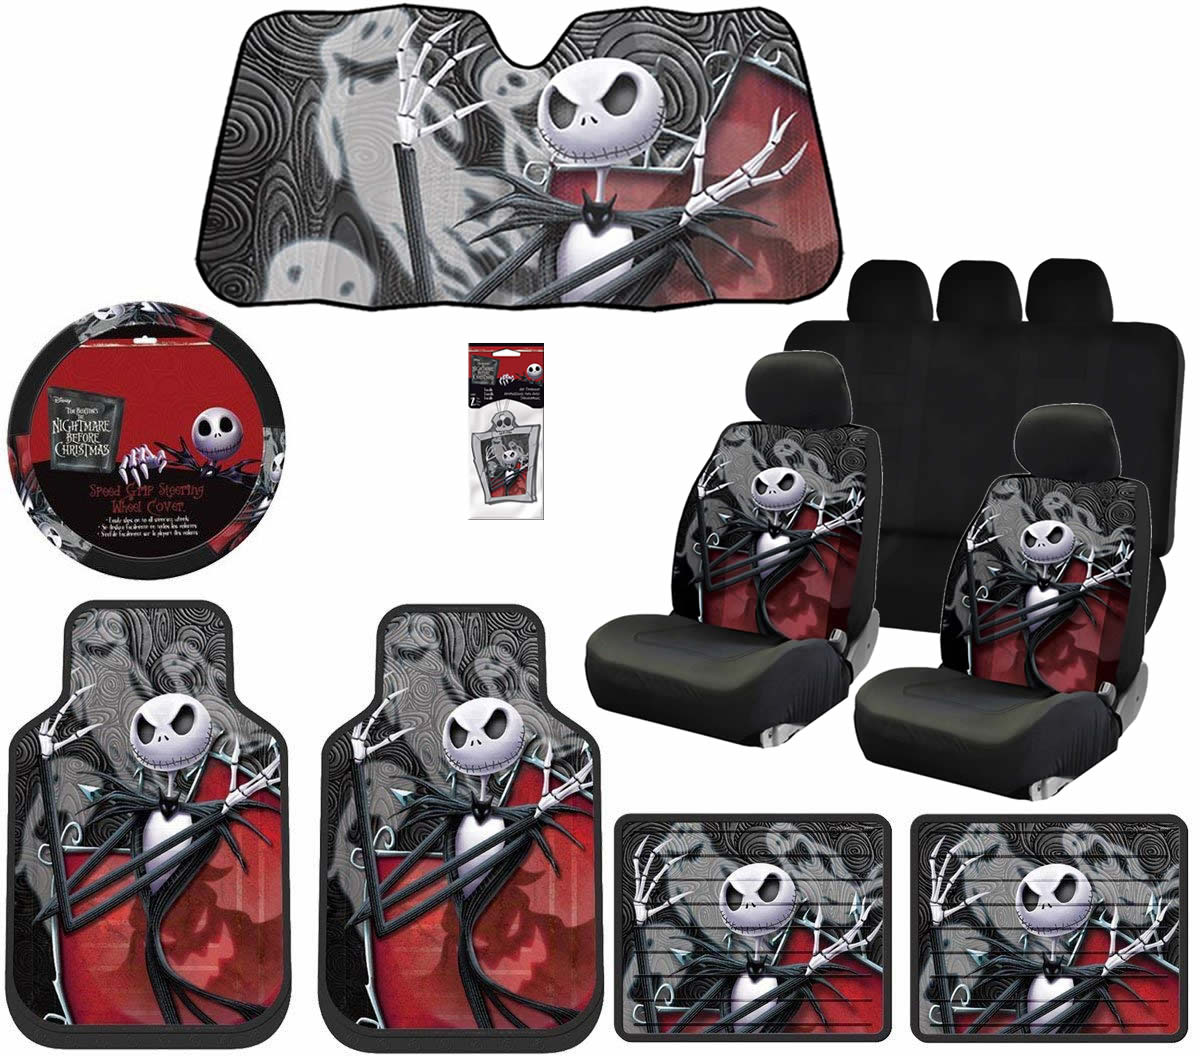 Miraculous Nightmare Before Christmas Jack Ghostly Floor Mats Steering Seat Covers Sunshade Air Freshener Universal Bench Walmart Com Bralicious Painted Fabric Chair Ideas Braliciousco